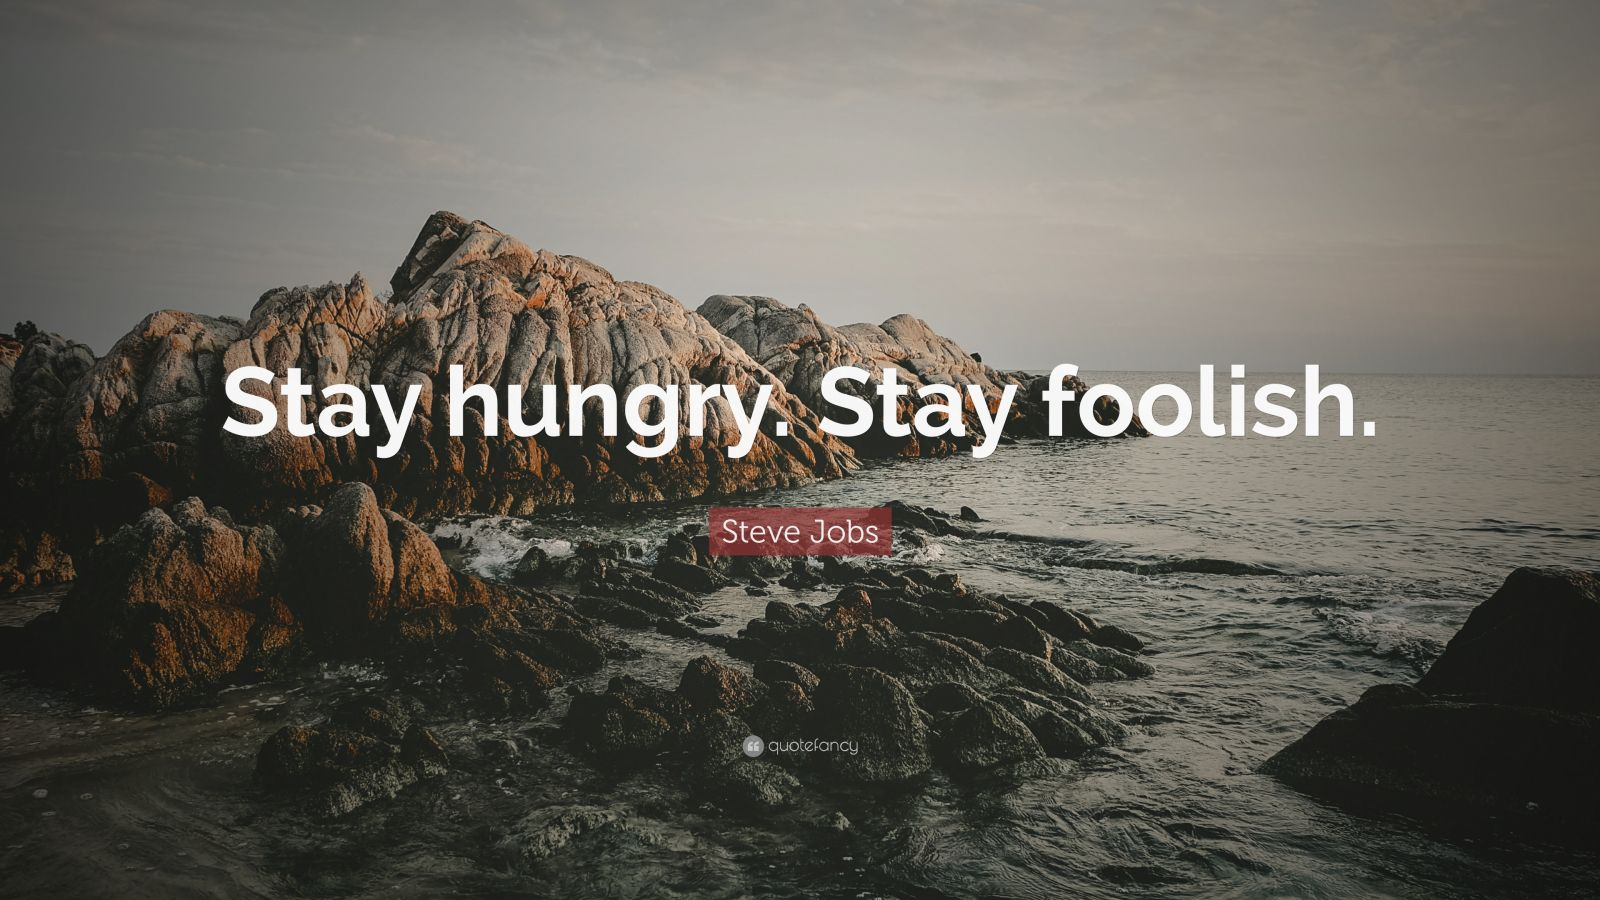 Stay Hungry, Stay Foolish, What Is The Meaning | Bolehbuka.com